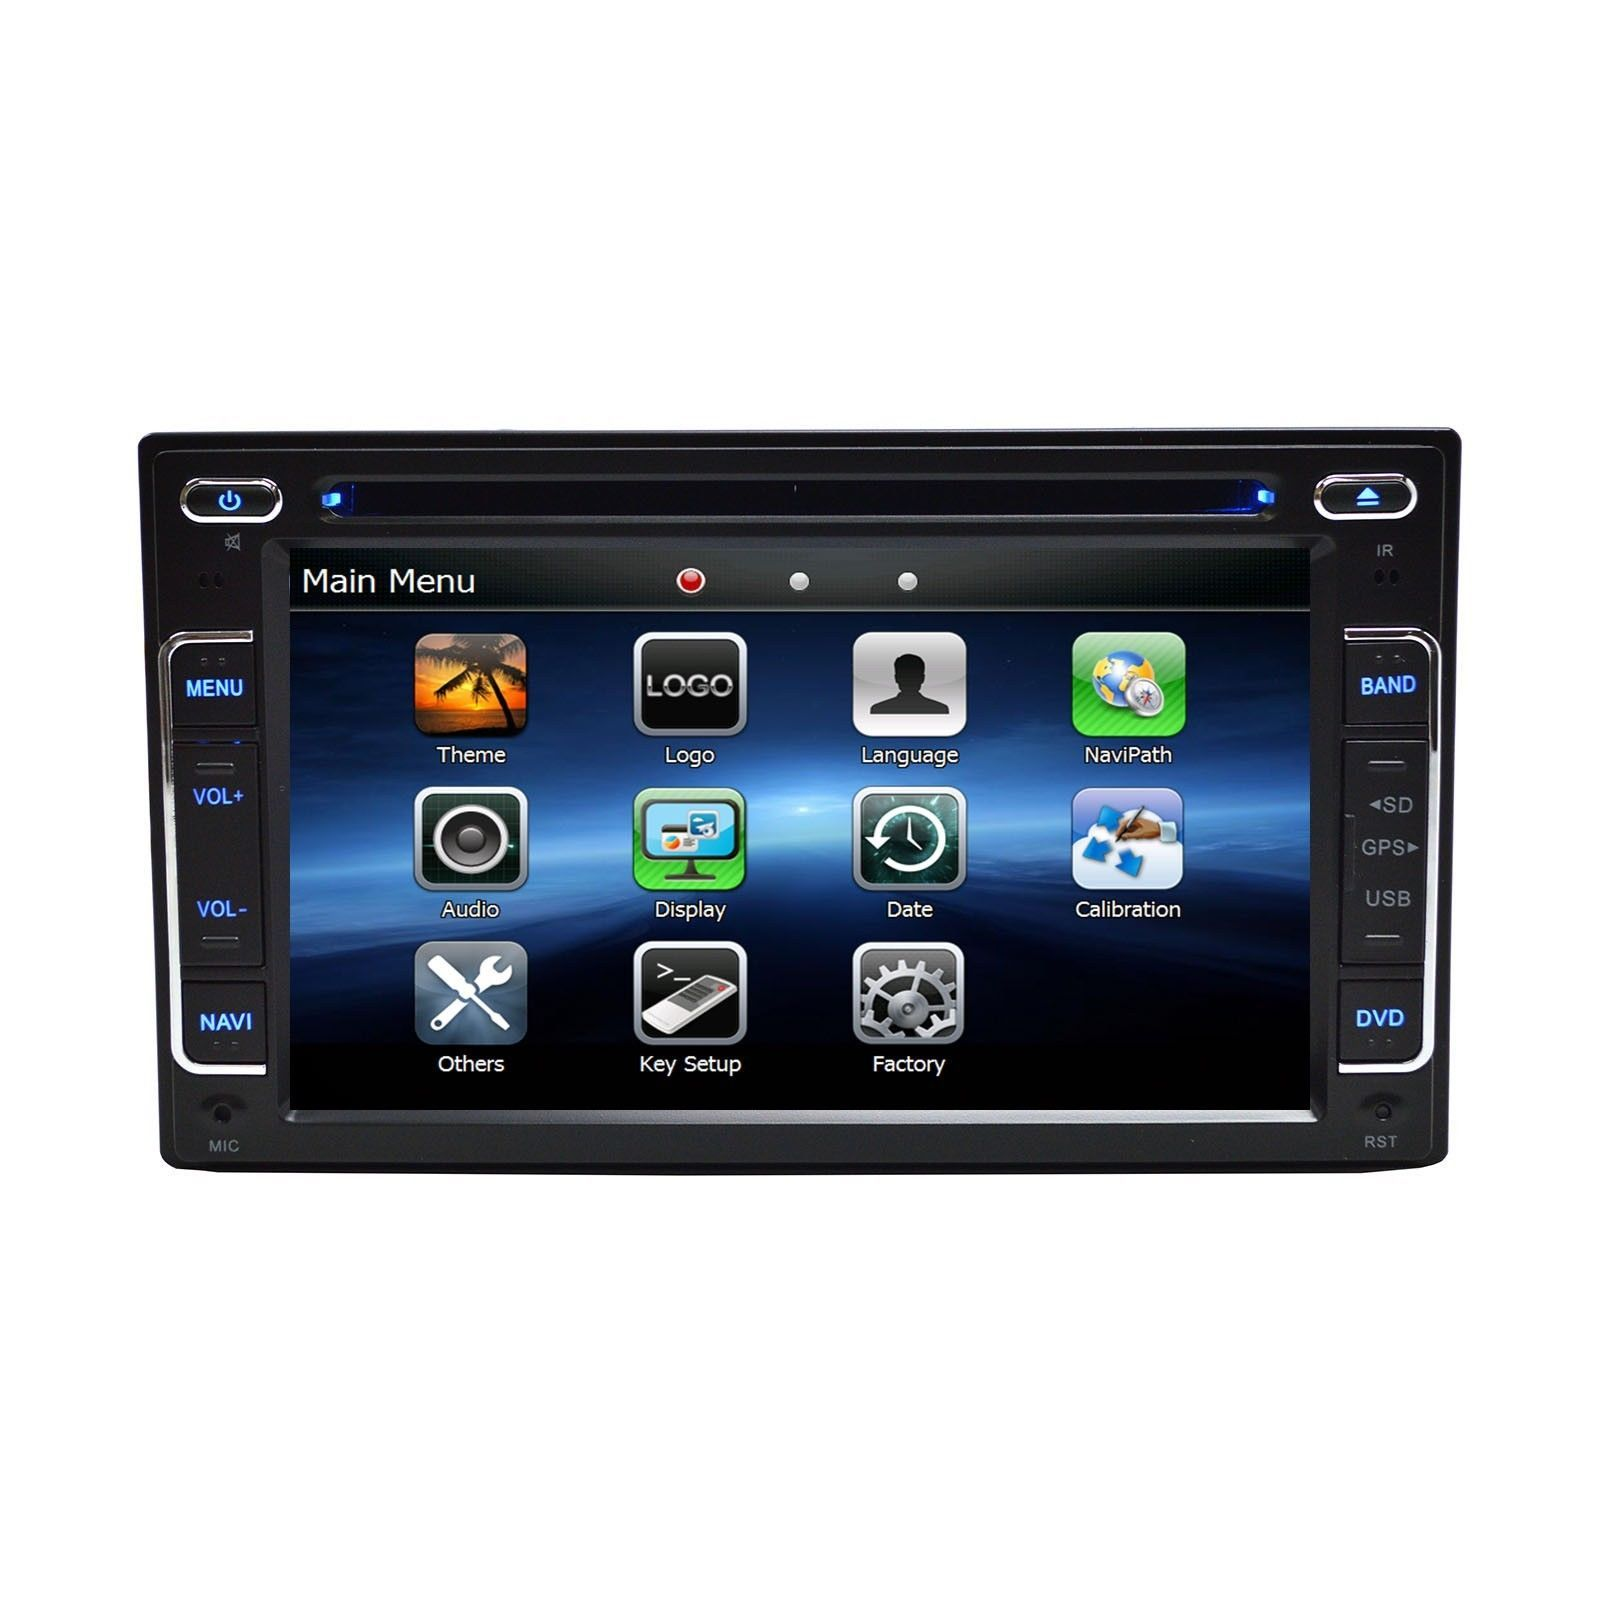 In Dash Multimedia Multimedia OE GPS Navigation Radio For Infinity G37 2008-13